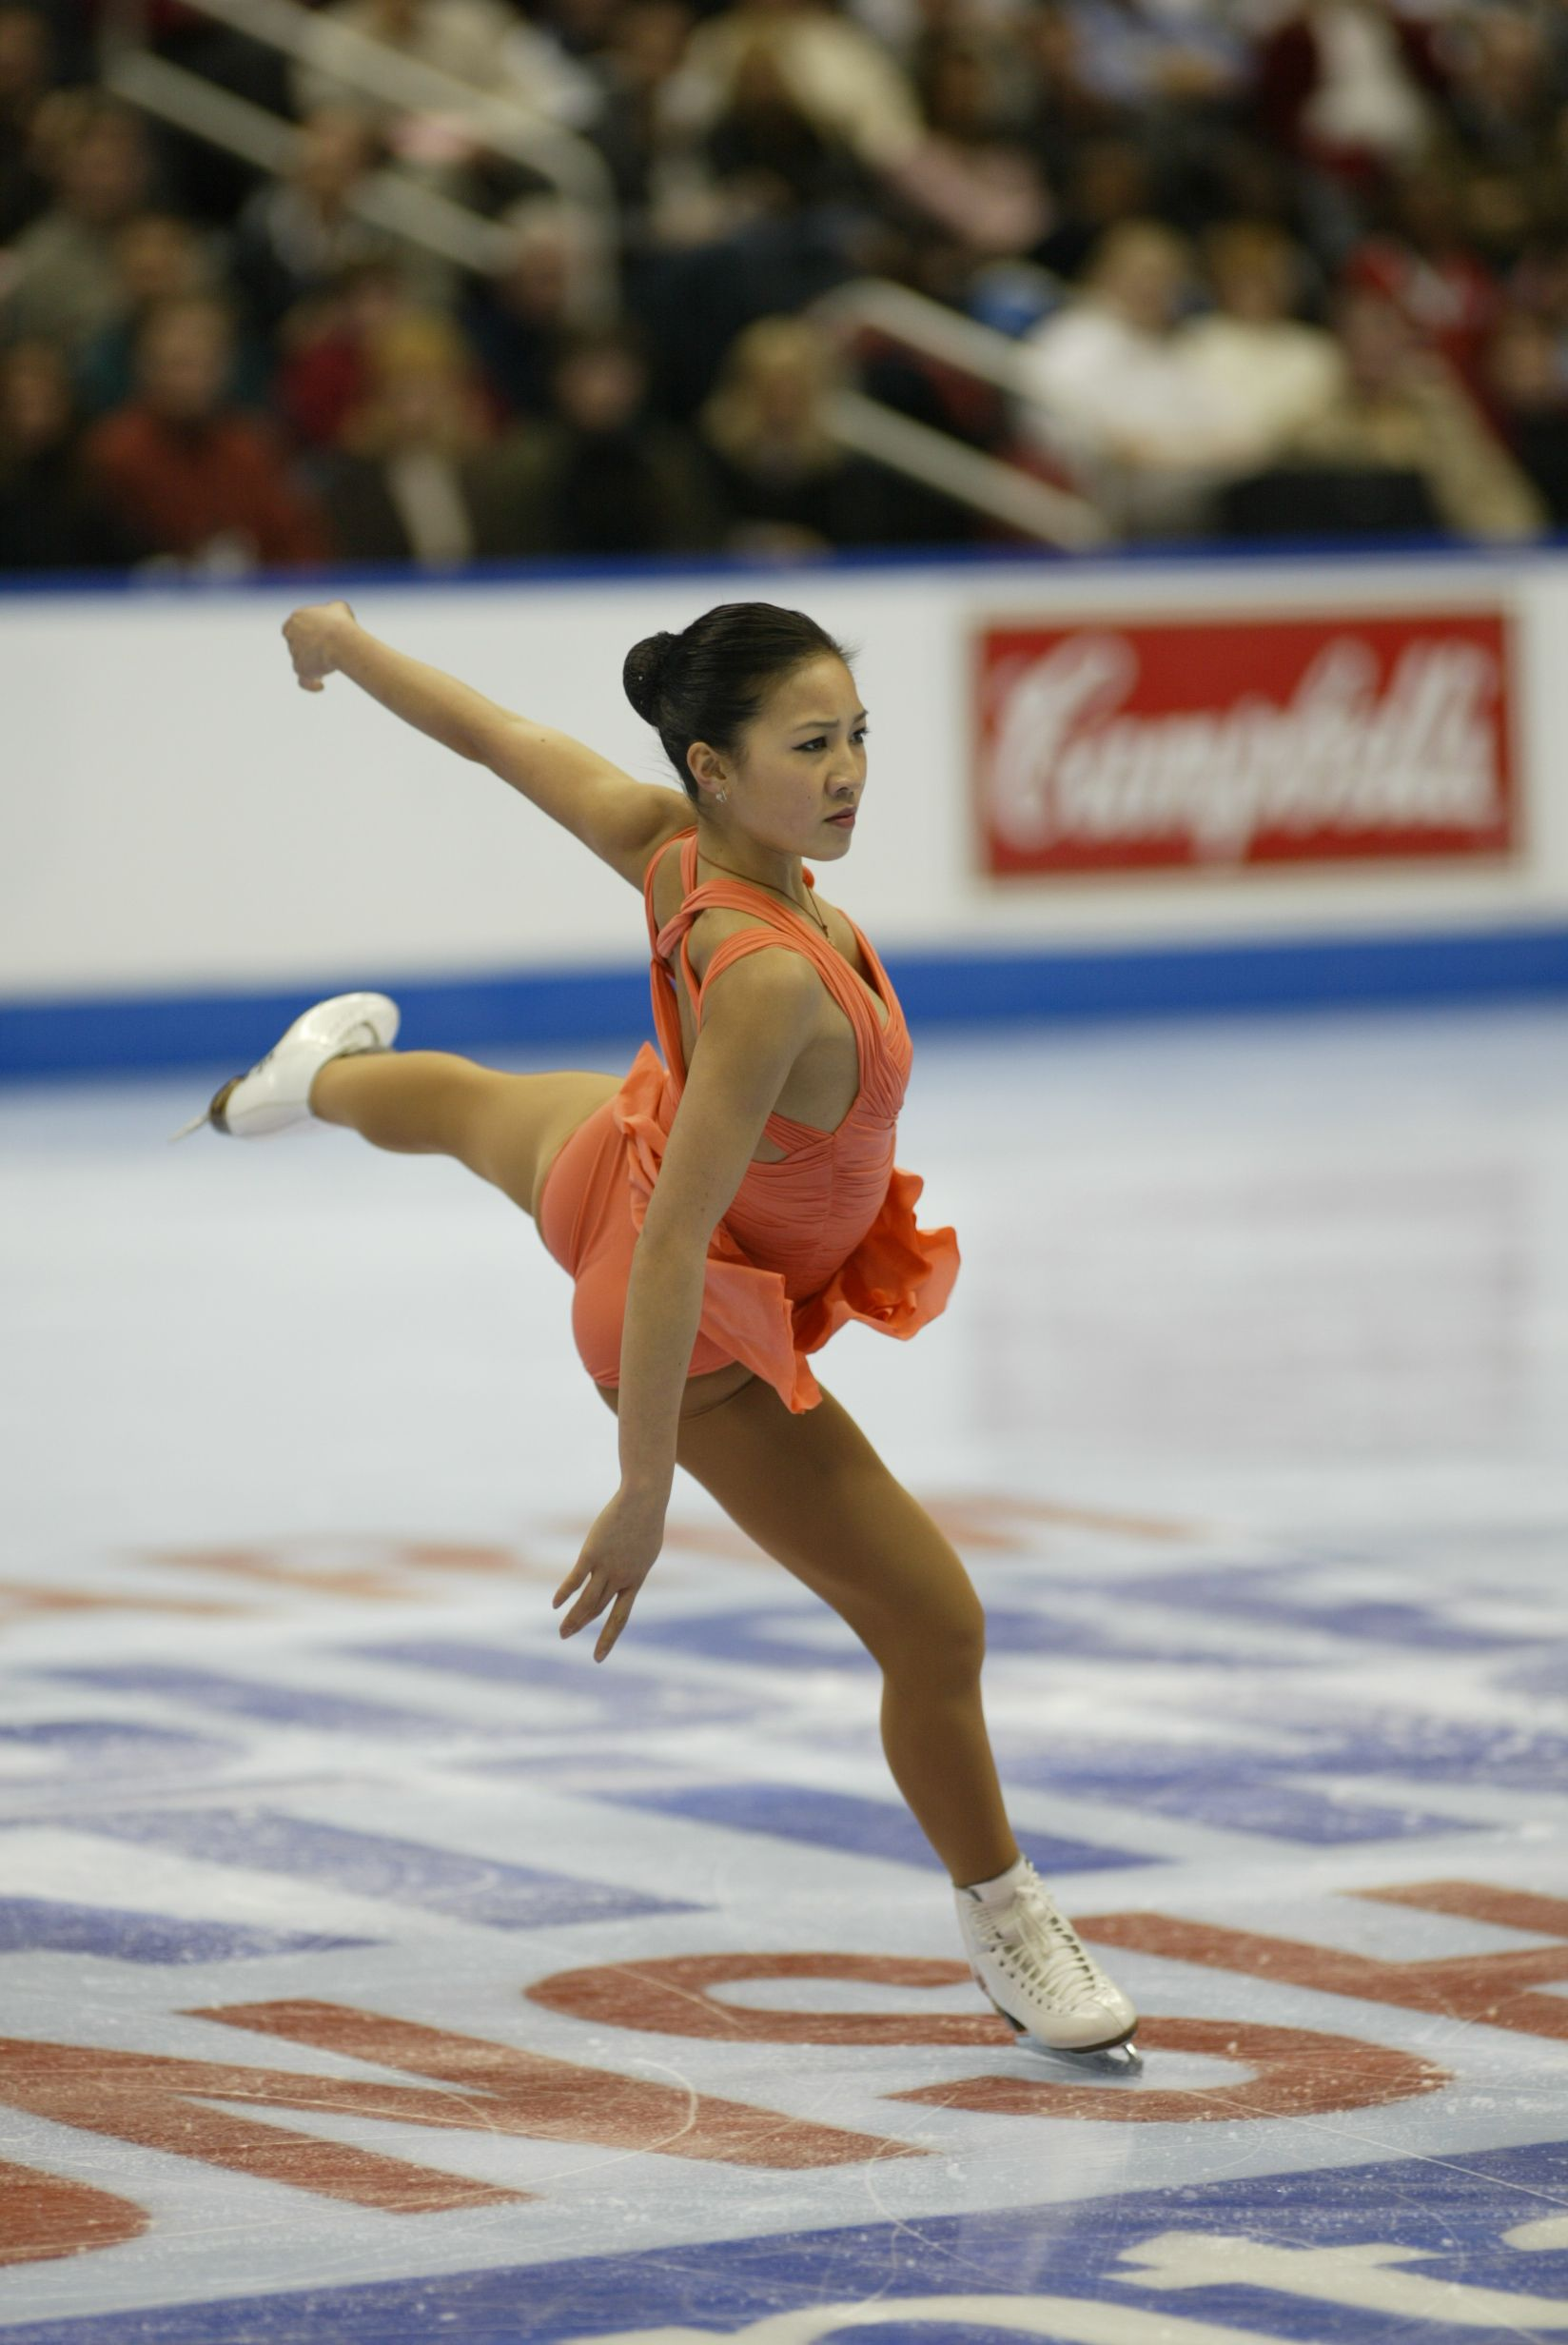 Ice skate ass butt pictures apologise